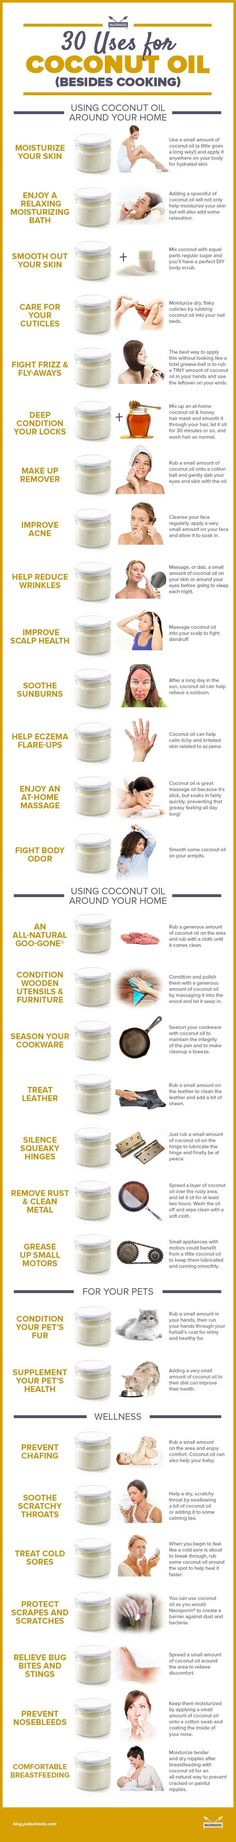 30 uses for coconut oil that don't involve cooking! Did you know that coconut oil is also great for cleaning?! Or that it's a fantastic beauty produc